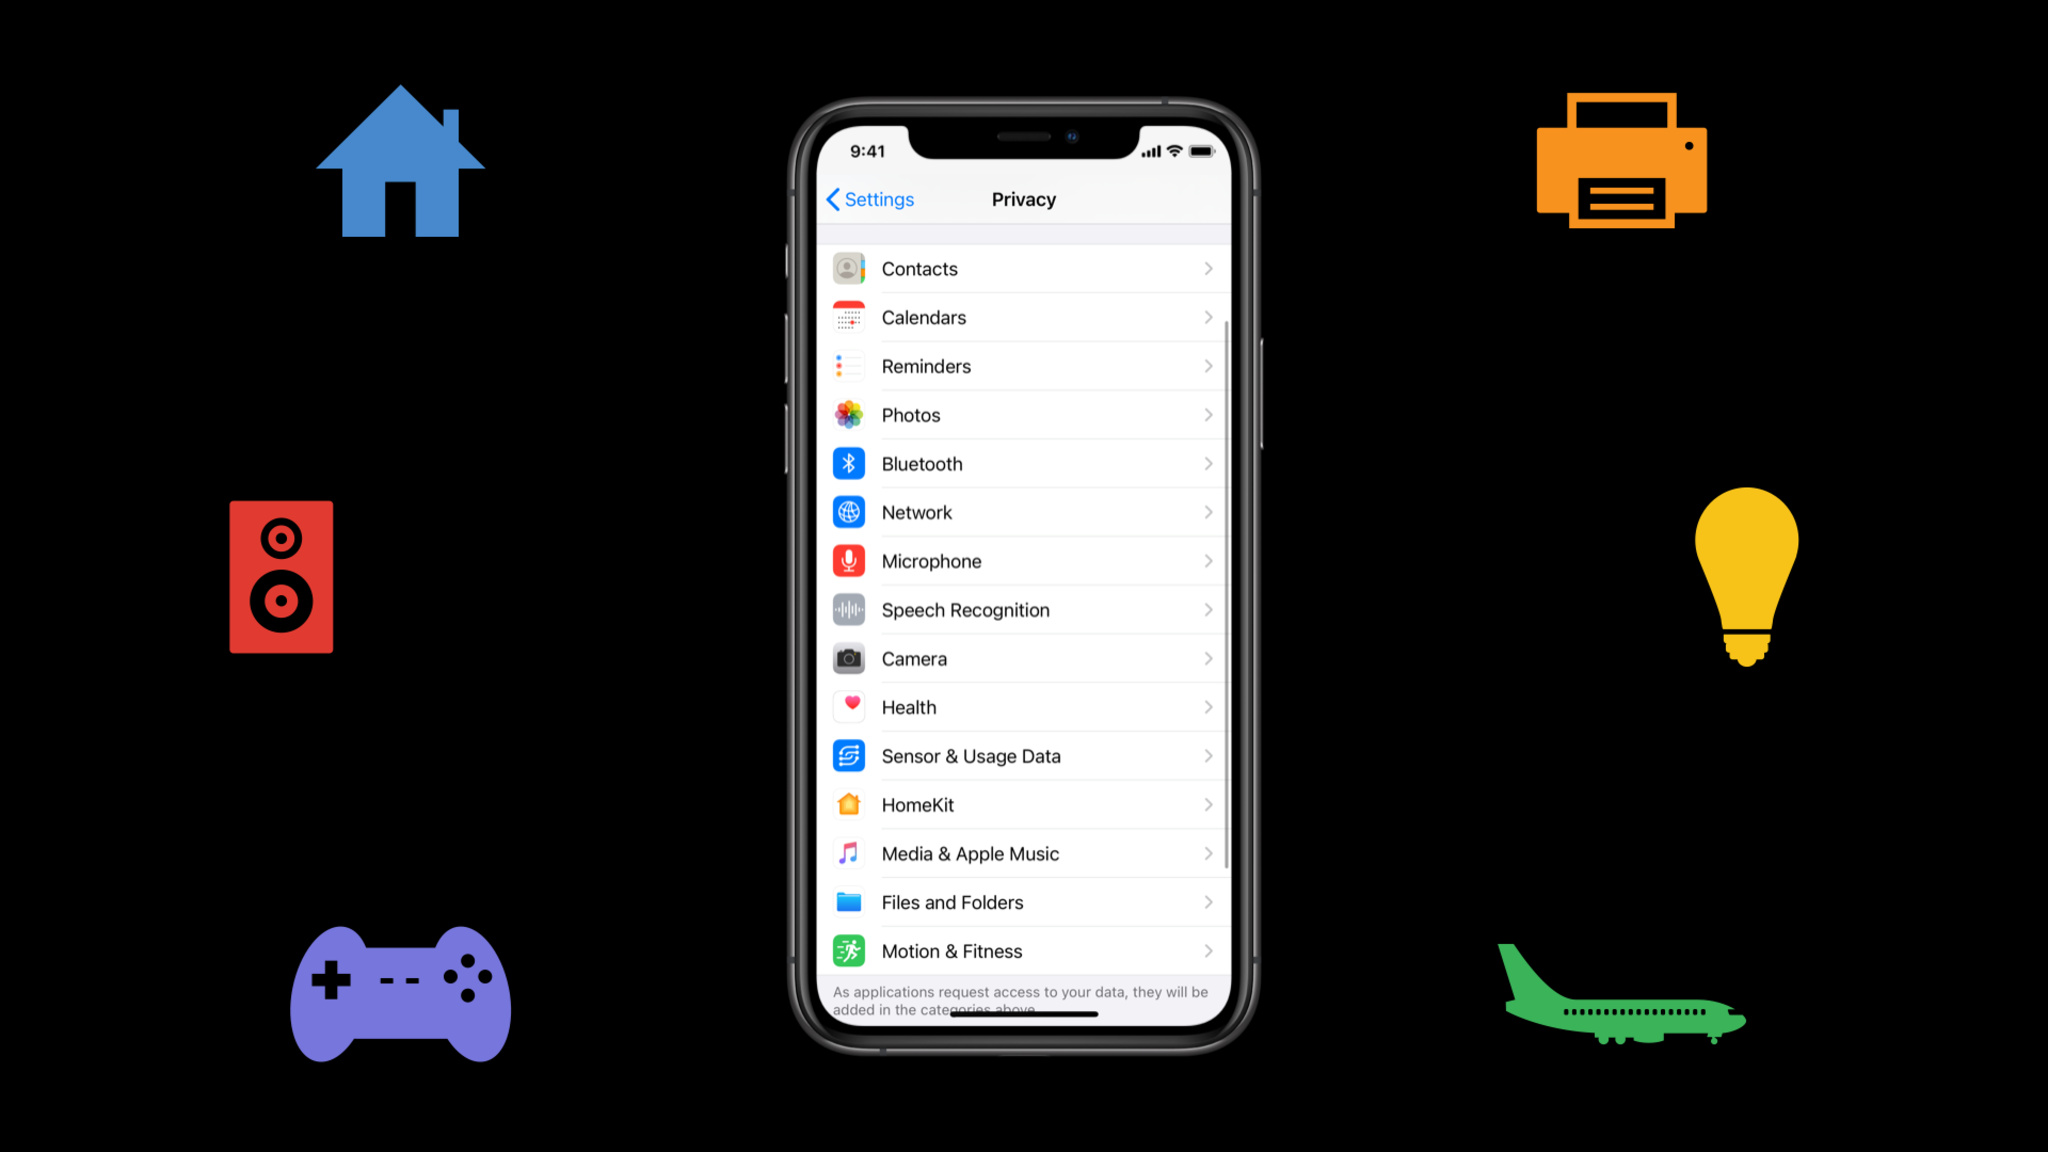 Privacy settings on iPhone with printer, lightbulb, plane, game, speaker, home icon